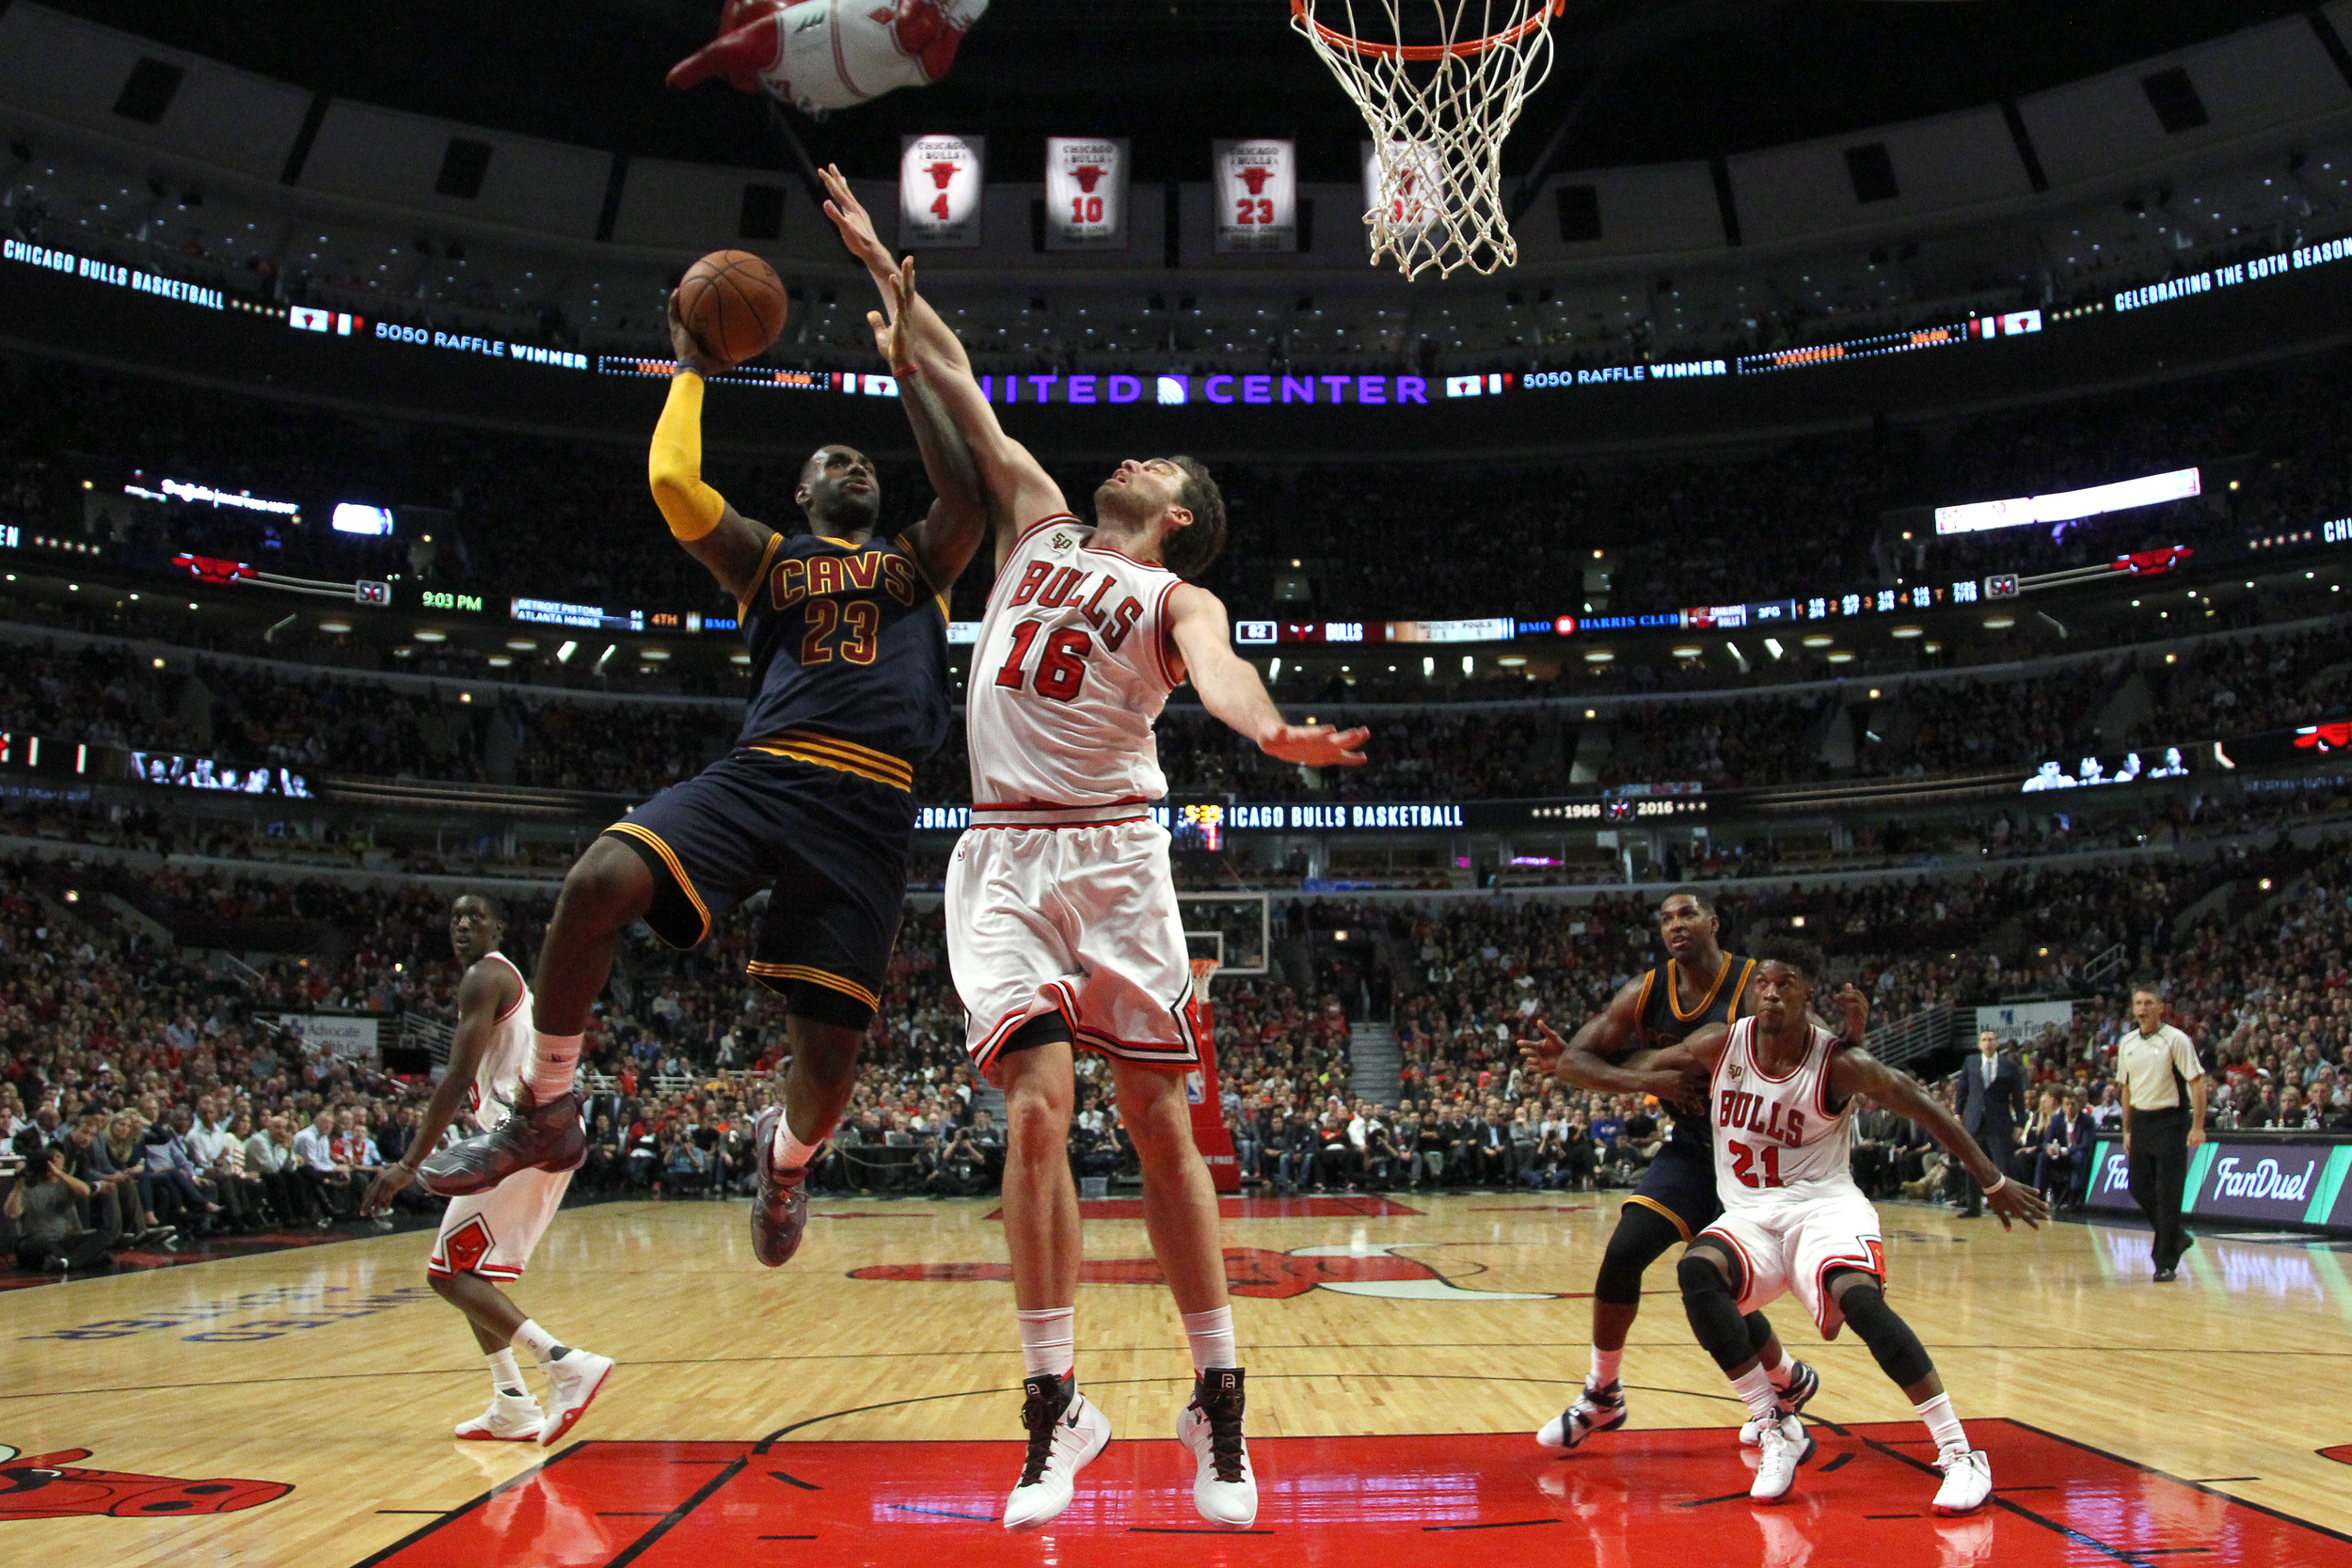 Cleveland Cavaliers forward LeBron James (23) shoots over Chicago Bulls forward  Pau  Gasol (16) during the second half of an NBA basketball game Tuesday, Oct. 27, 2015, in Chicago. The Bulls won the game 97-95. (AP)